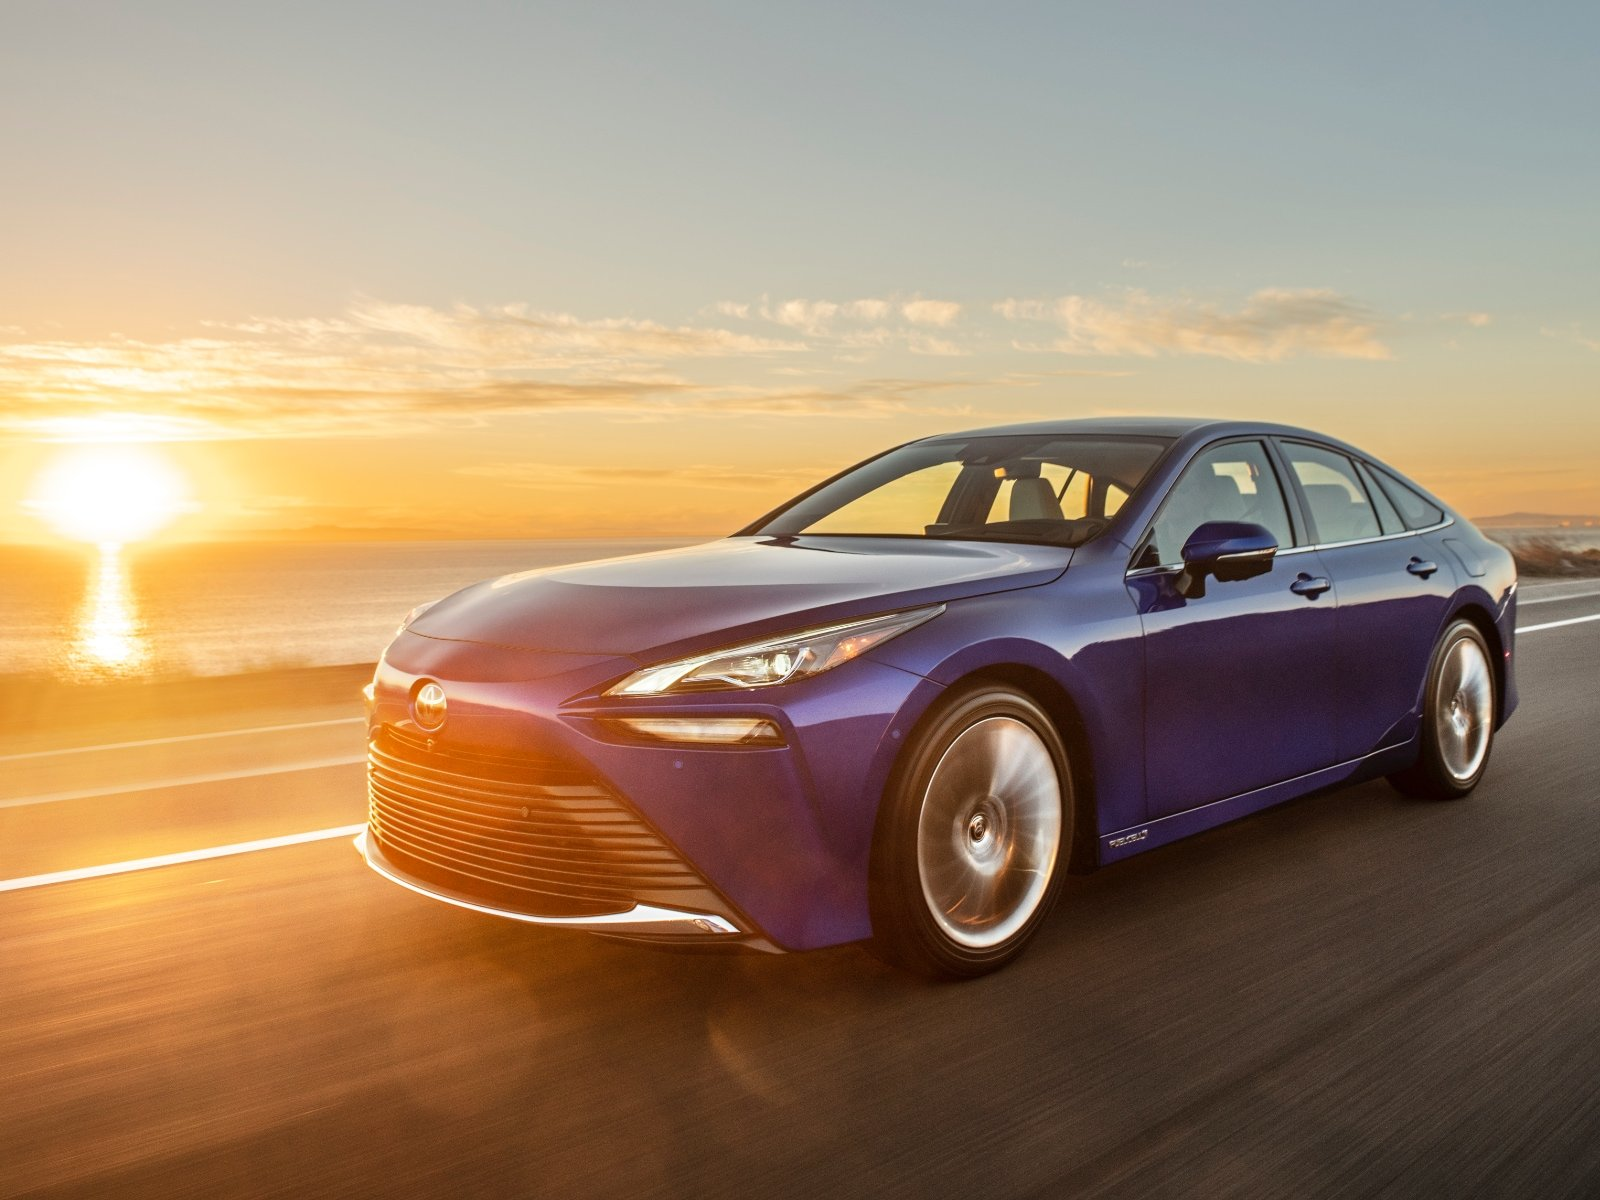 Changes to 2021 Toyota Models Shine a Spotlight on Safety and Hybrid Powertrains